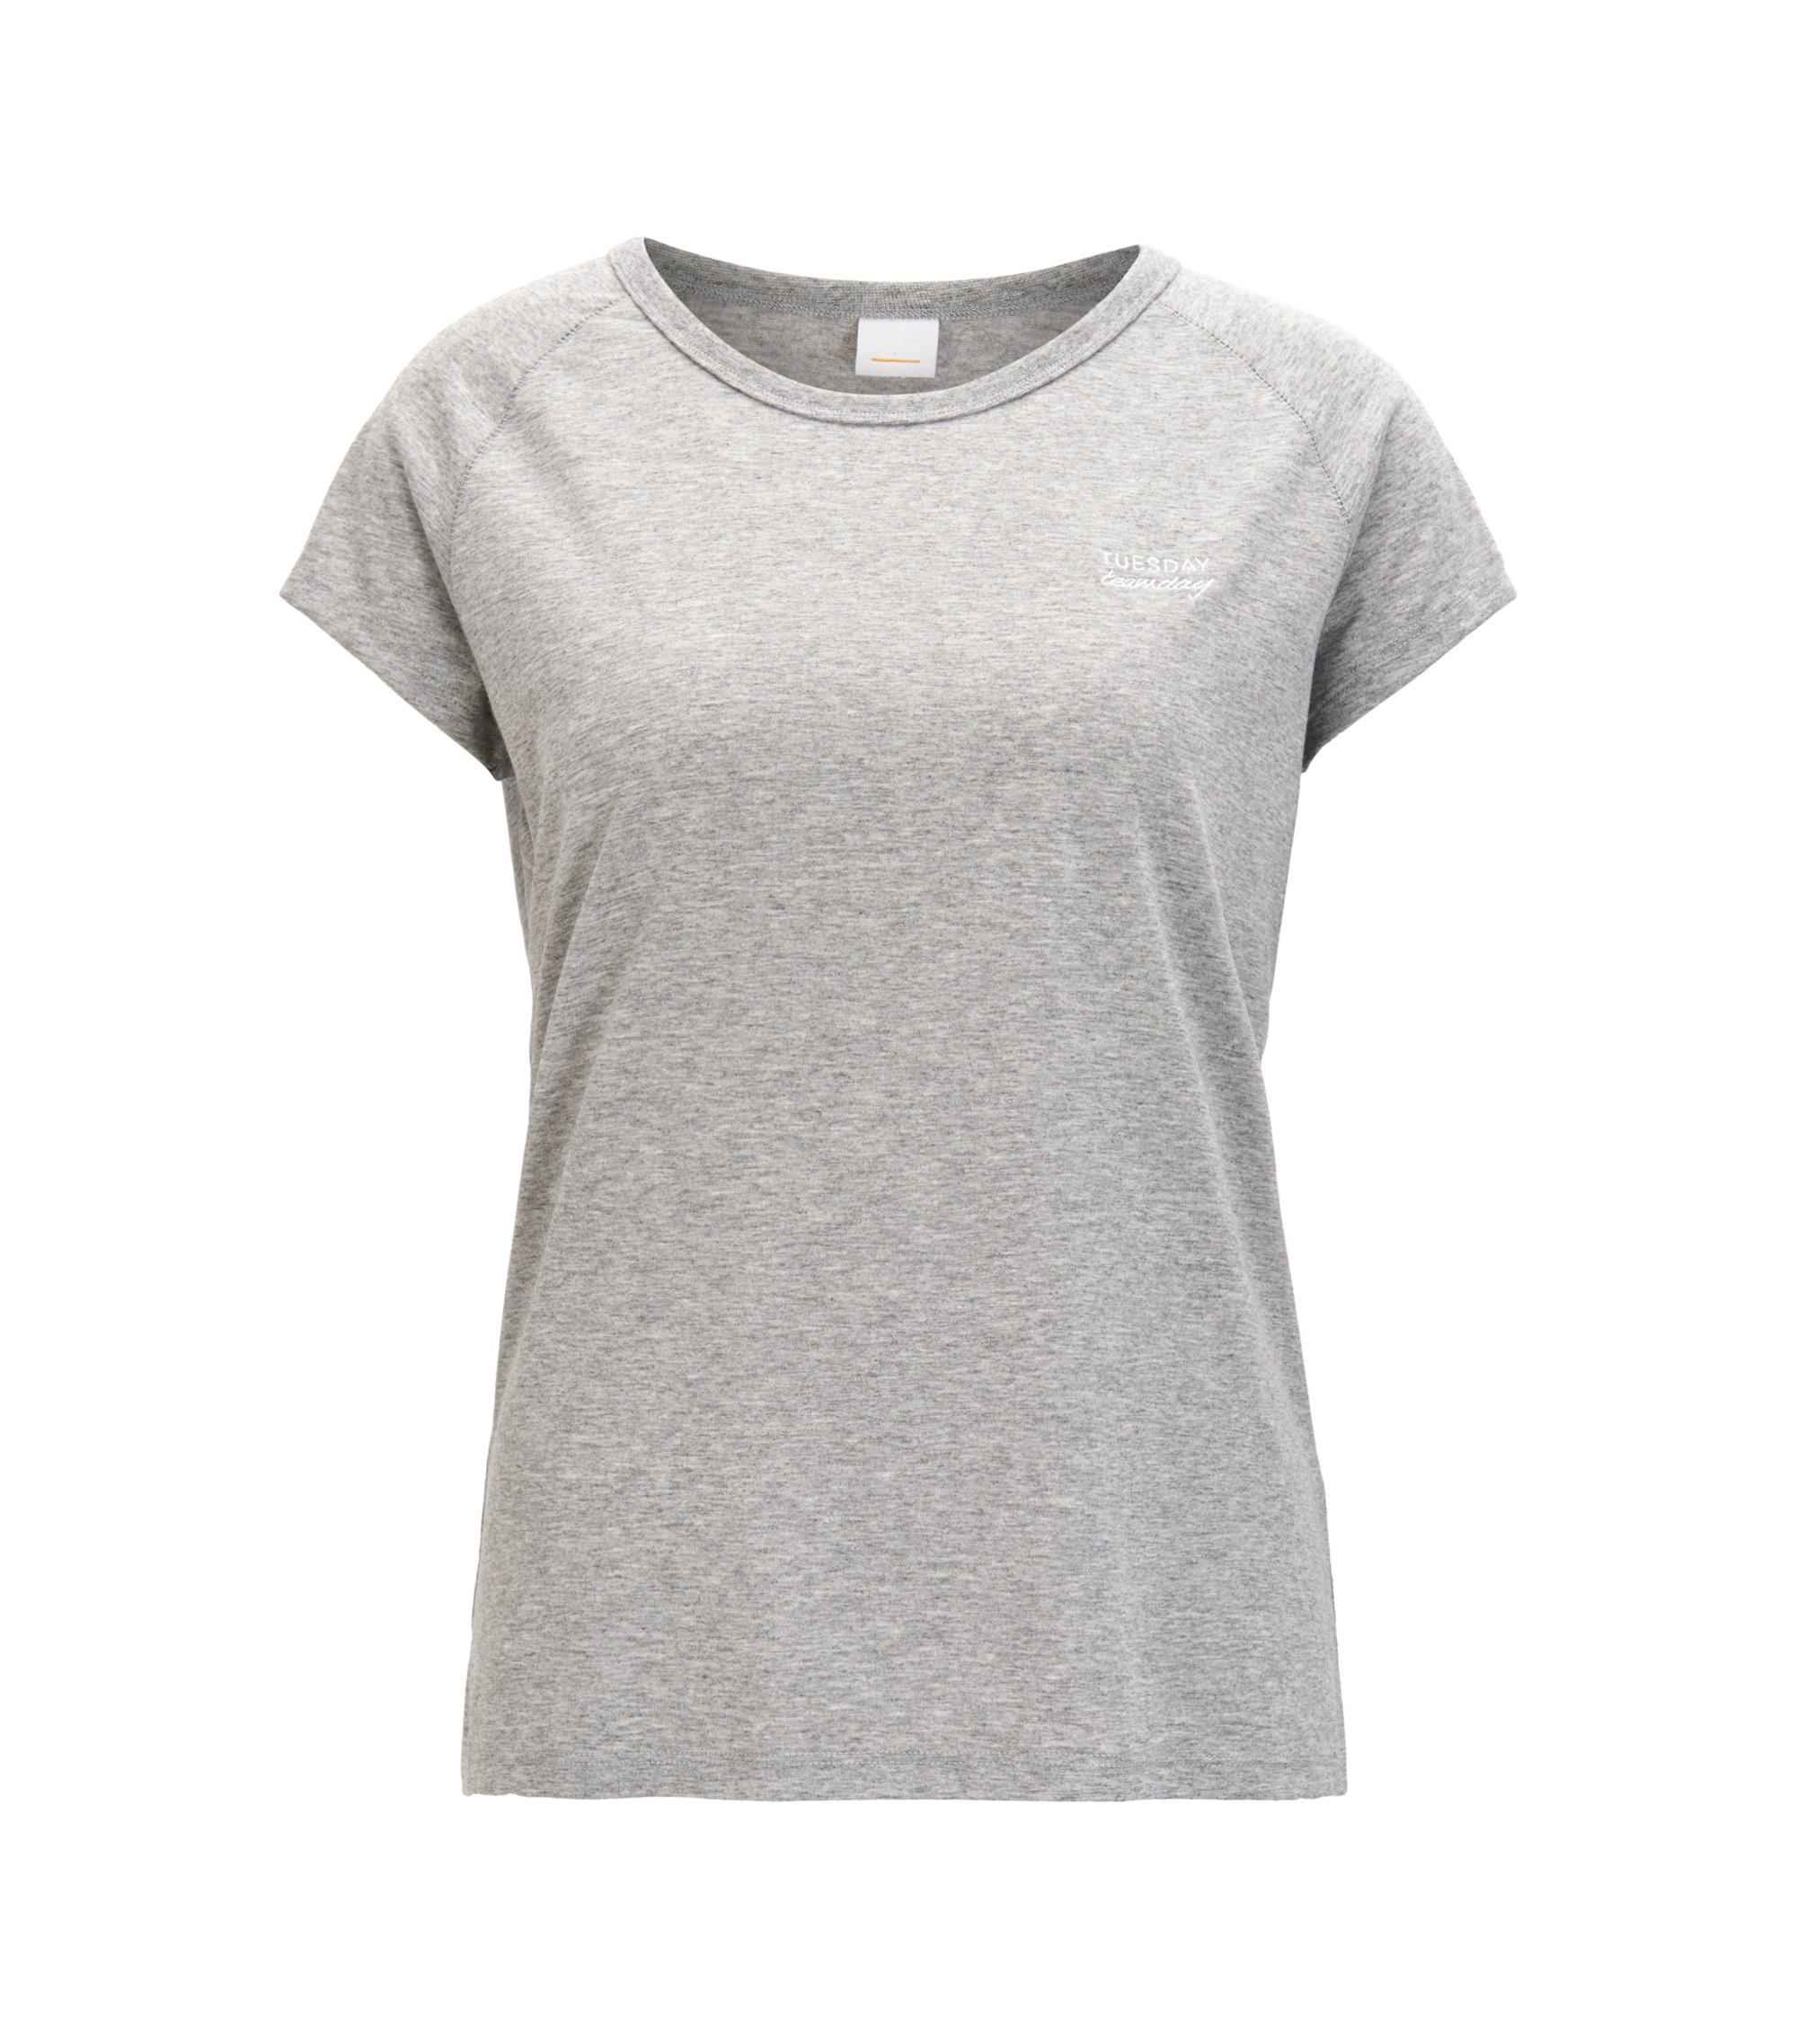 Slogan-detail mélange T-shirt with raglan sleeves, Light Grey